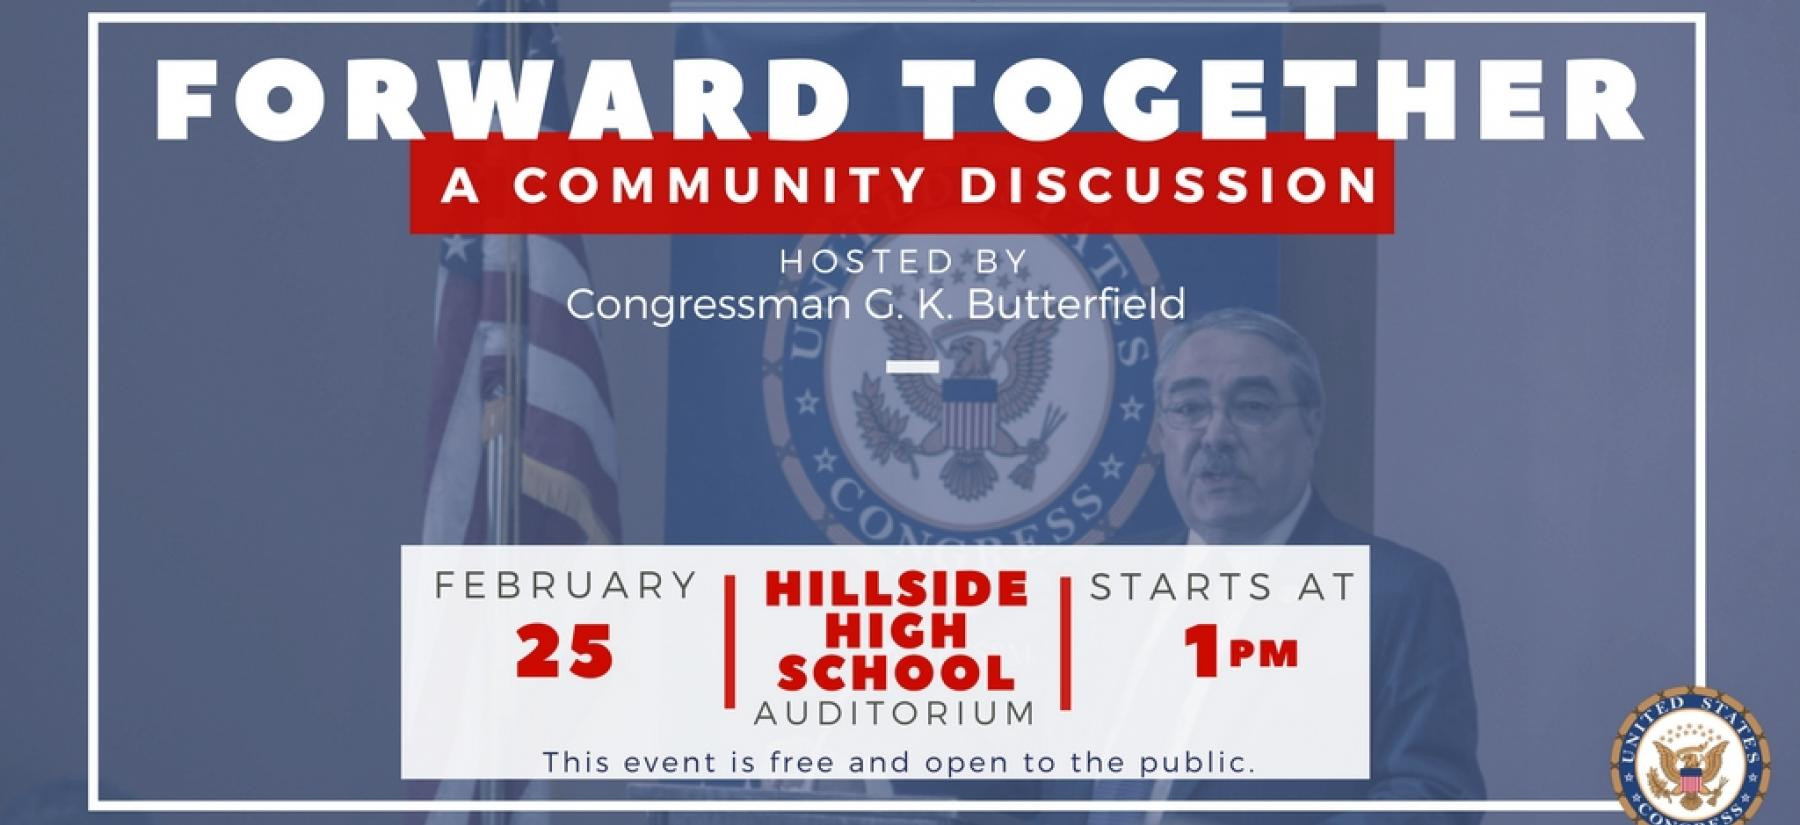 Rep. Butterfield Hosts a Community Discussion